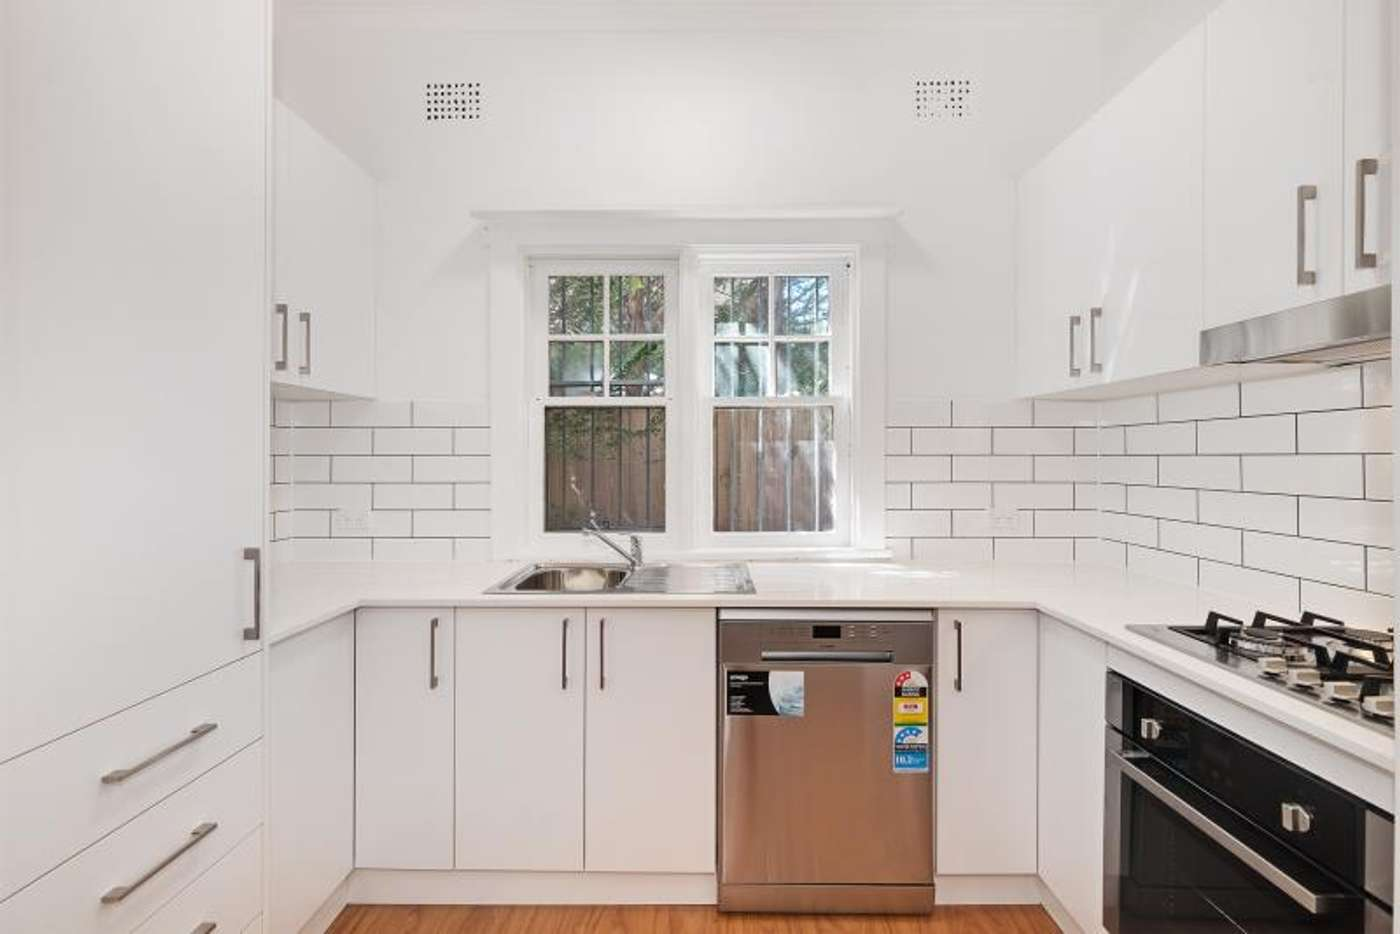 Main view of Homely apartment listing, 1/62 Cowper Street, Randwick NSW 2031